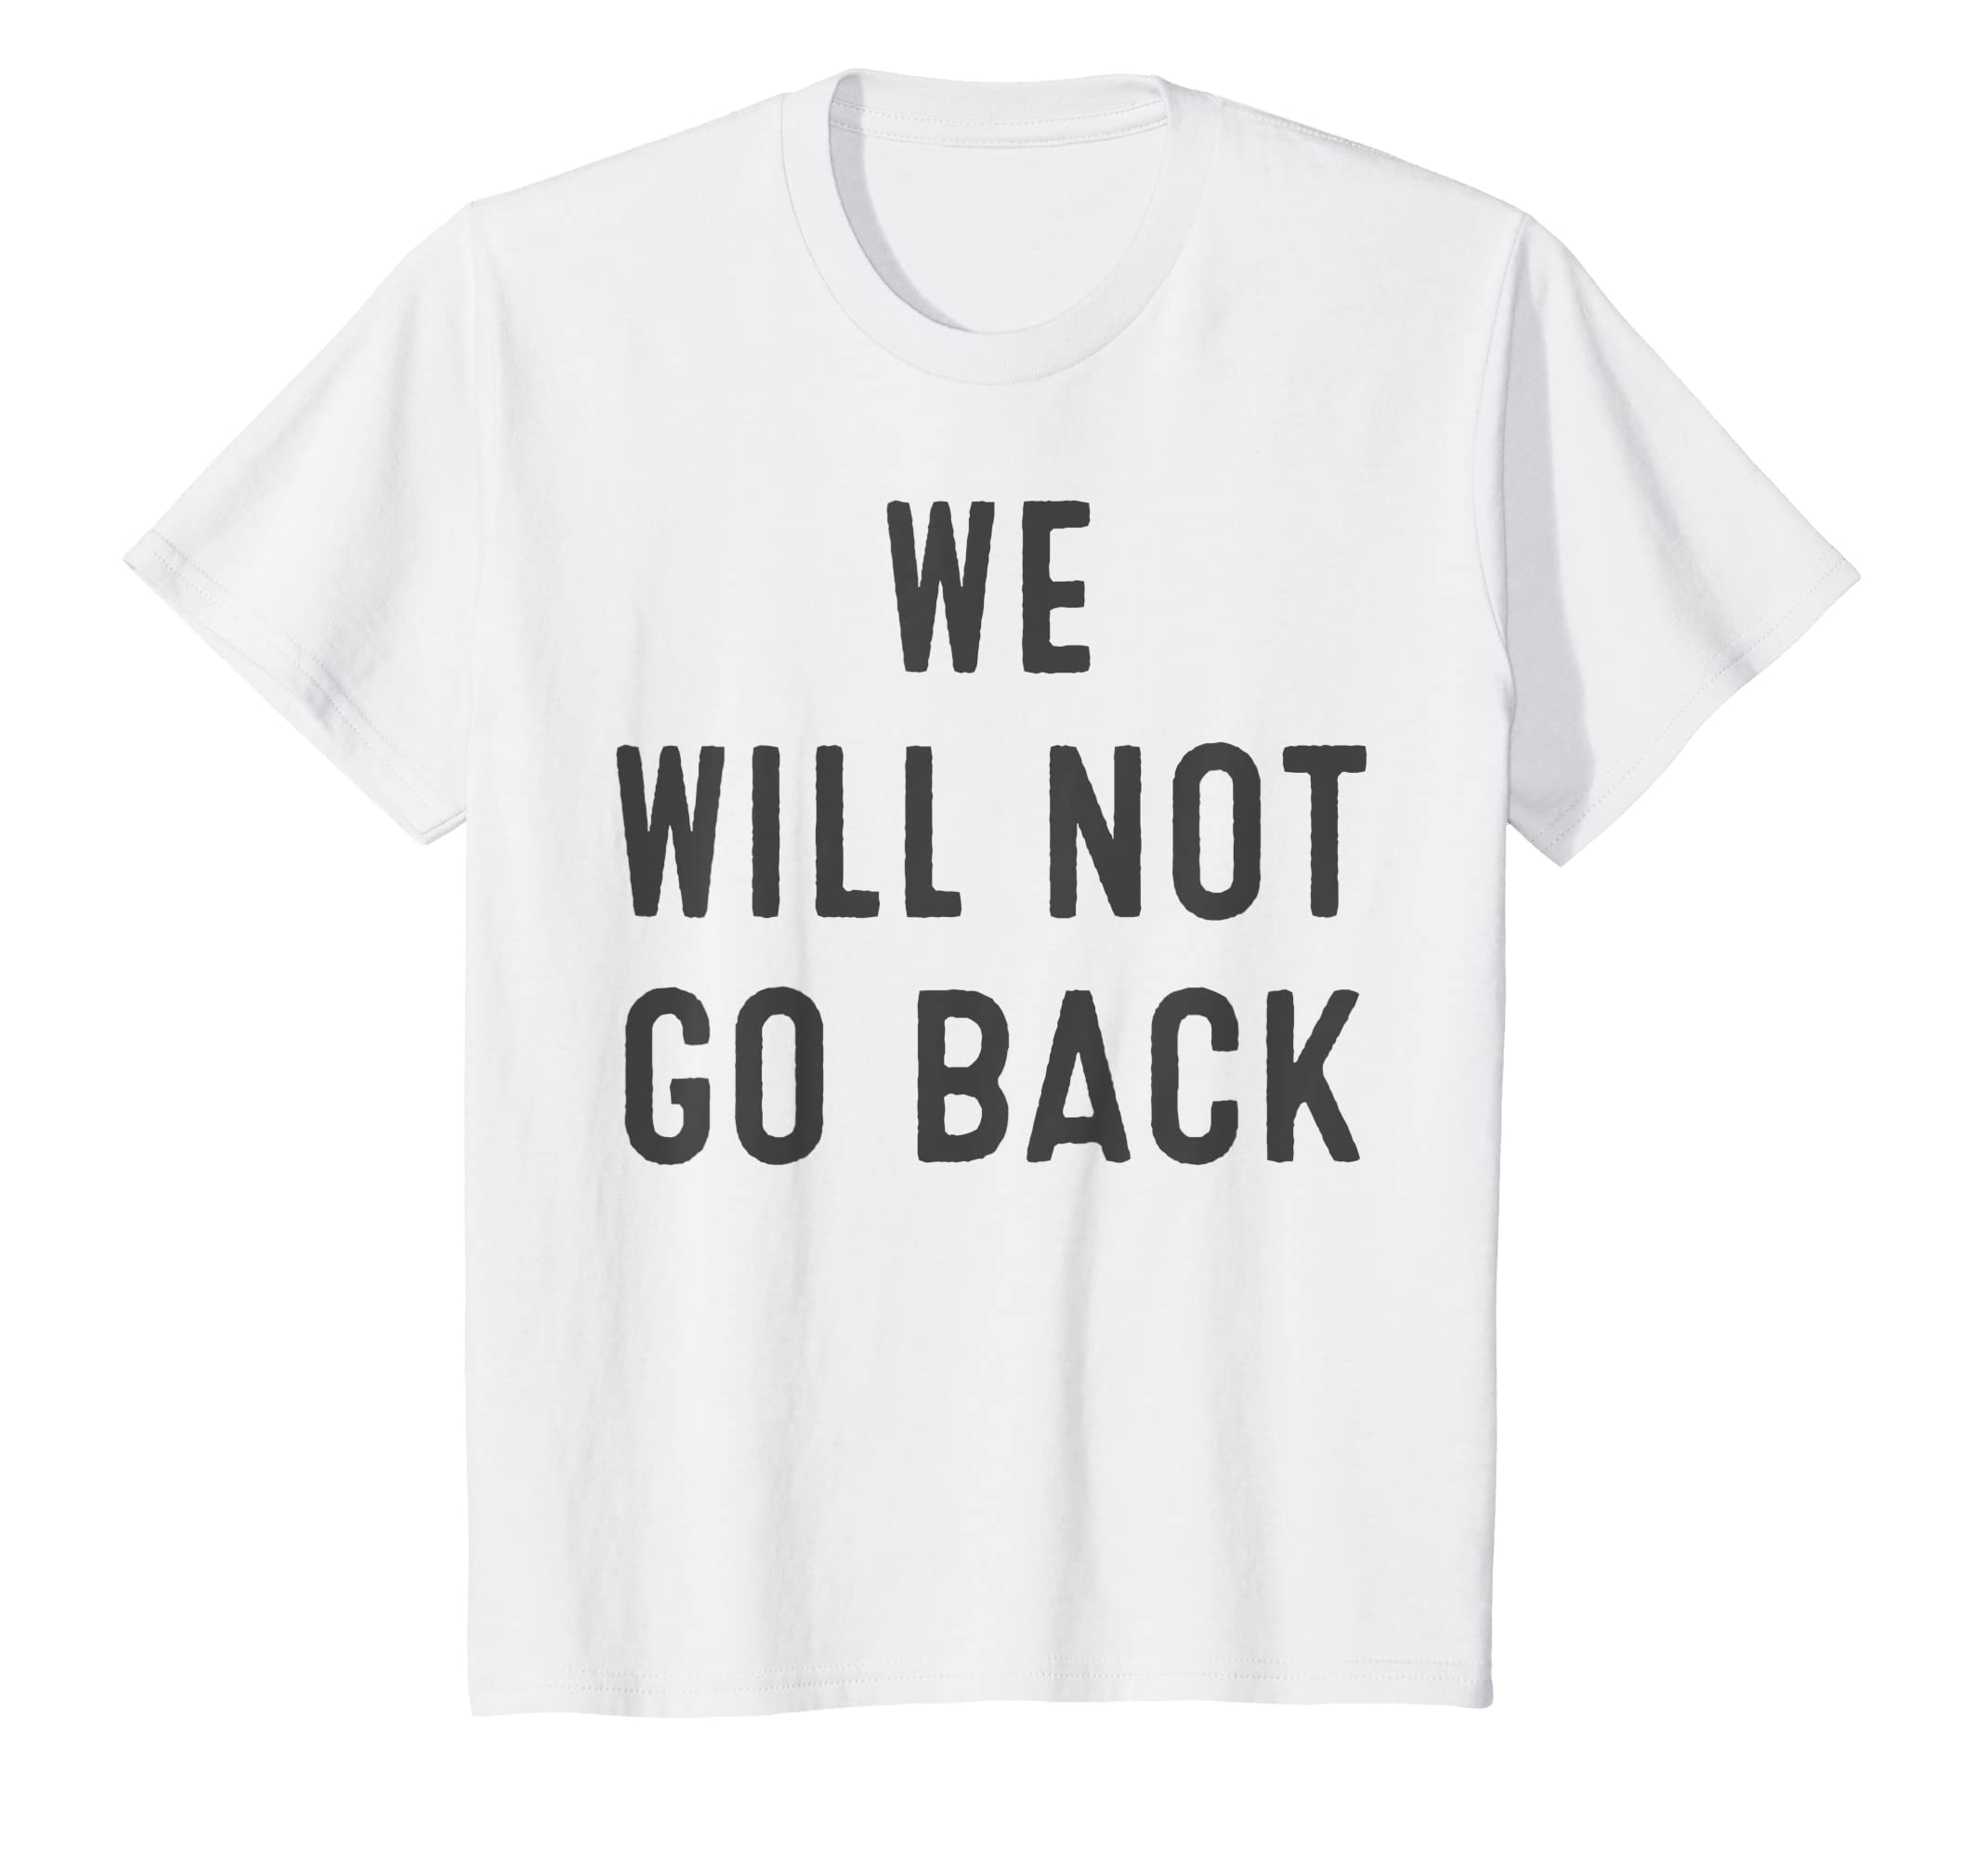 0606a6ae Amazon.com: We Will Not Go Back Tshirt #womenwearwhite: Clothing